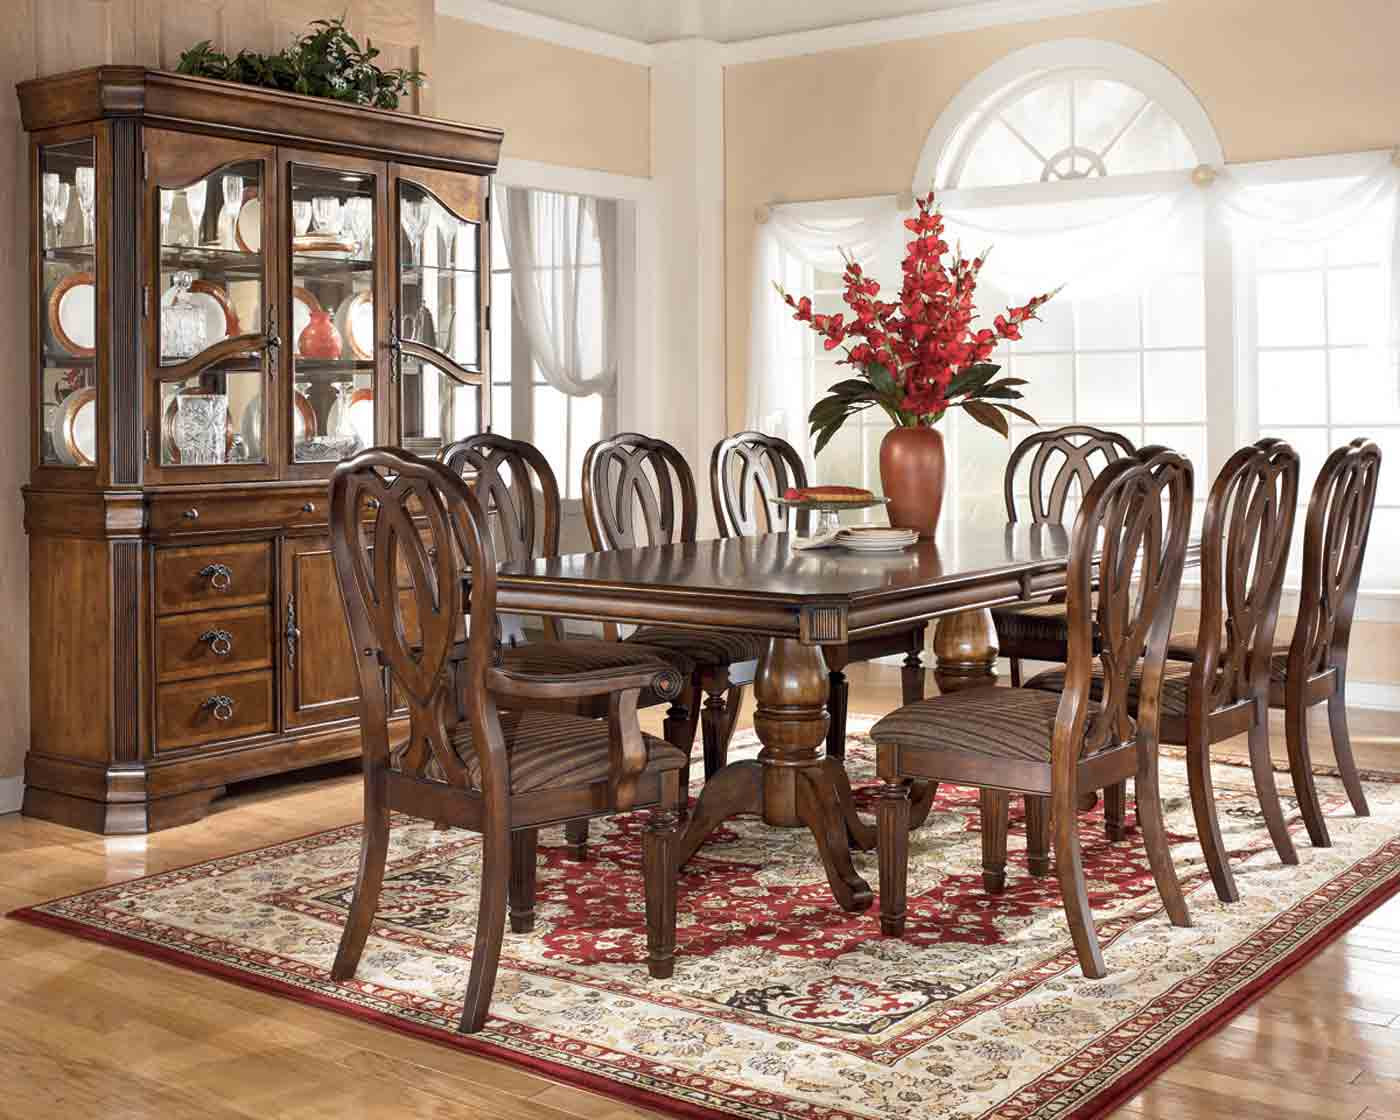 Traditional dining room decorating ideas - large and beautiful